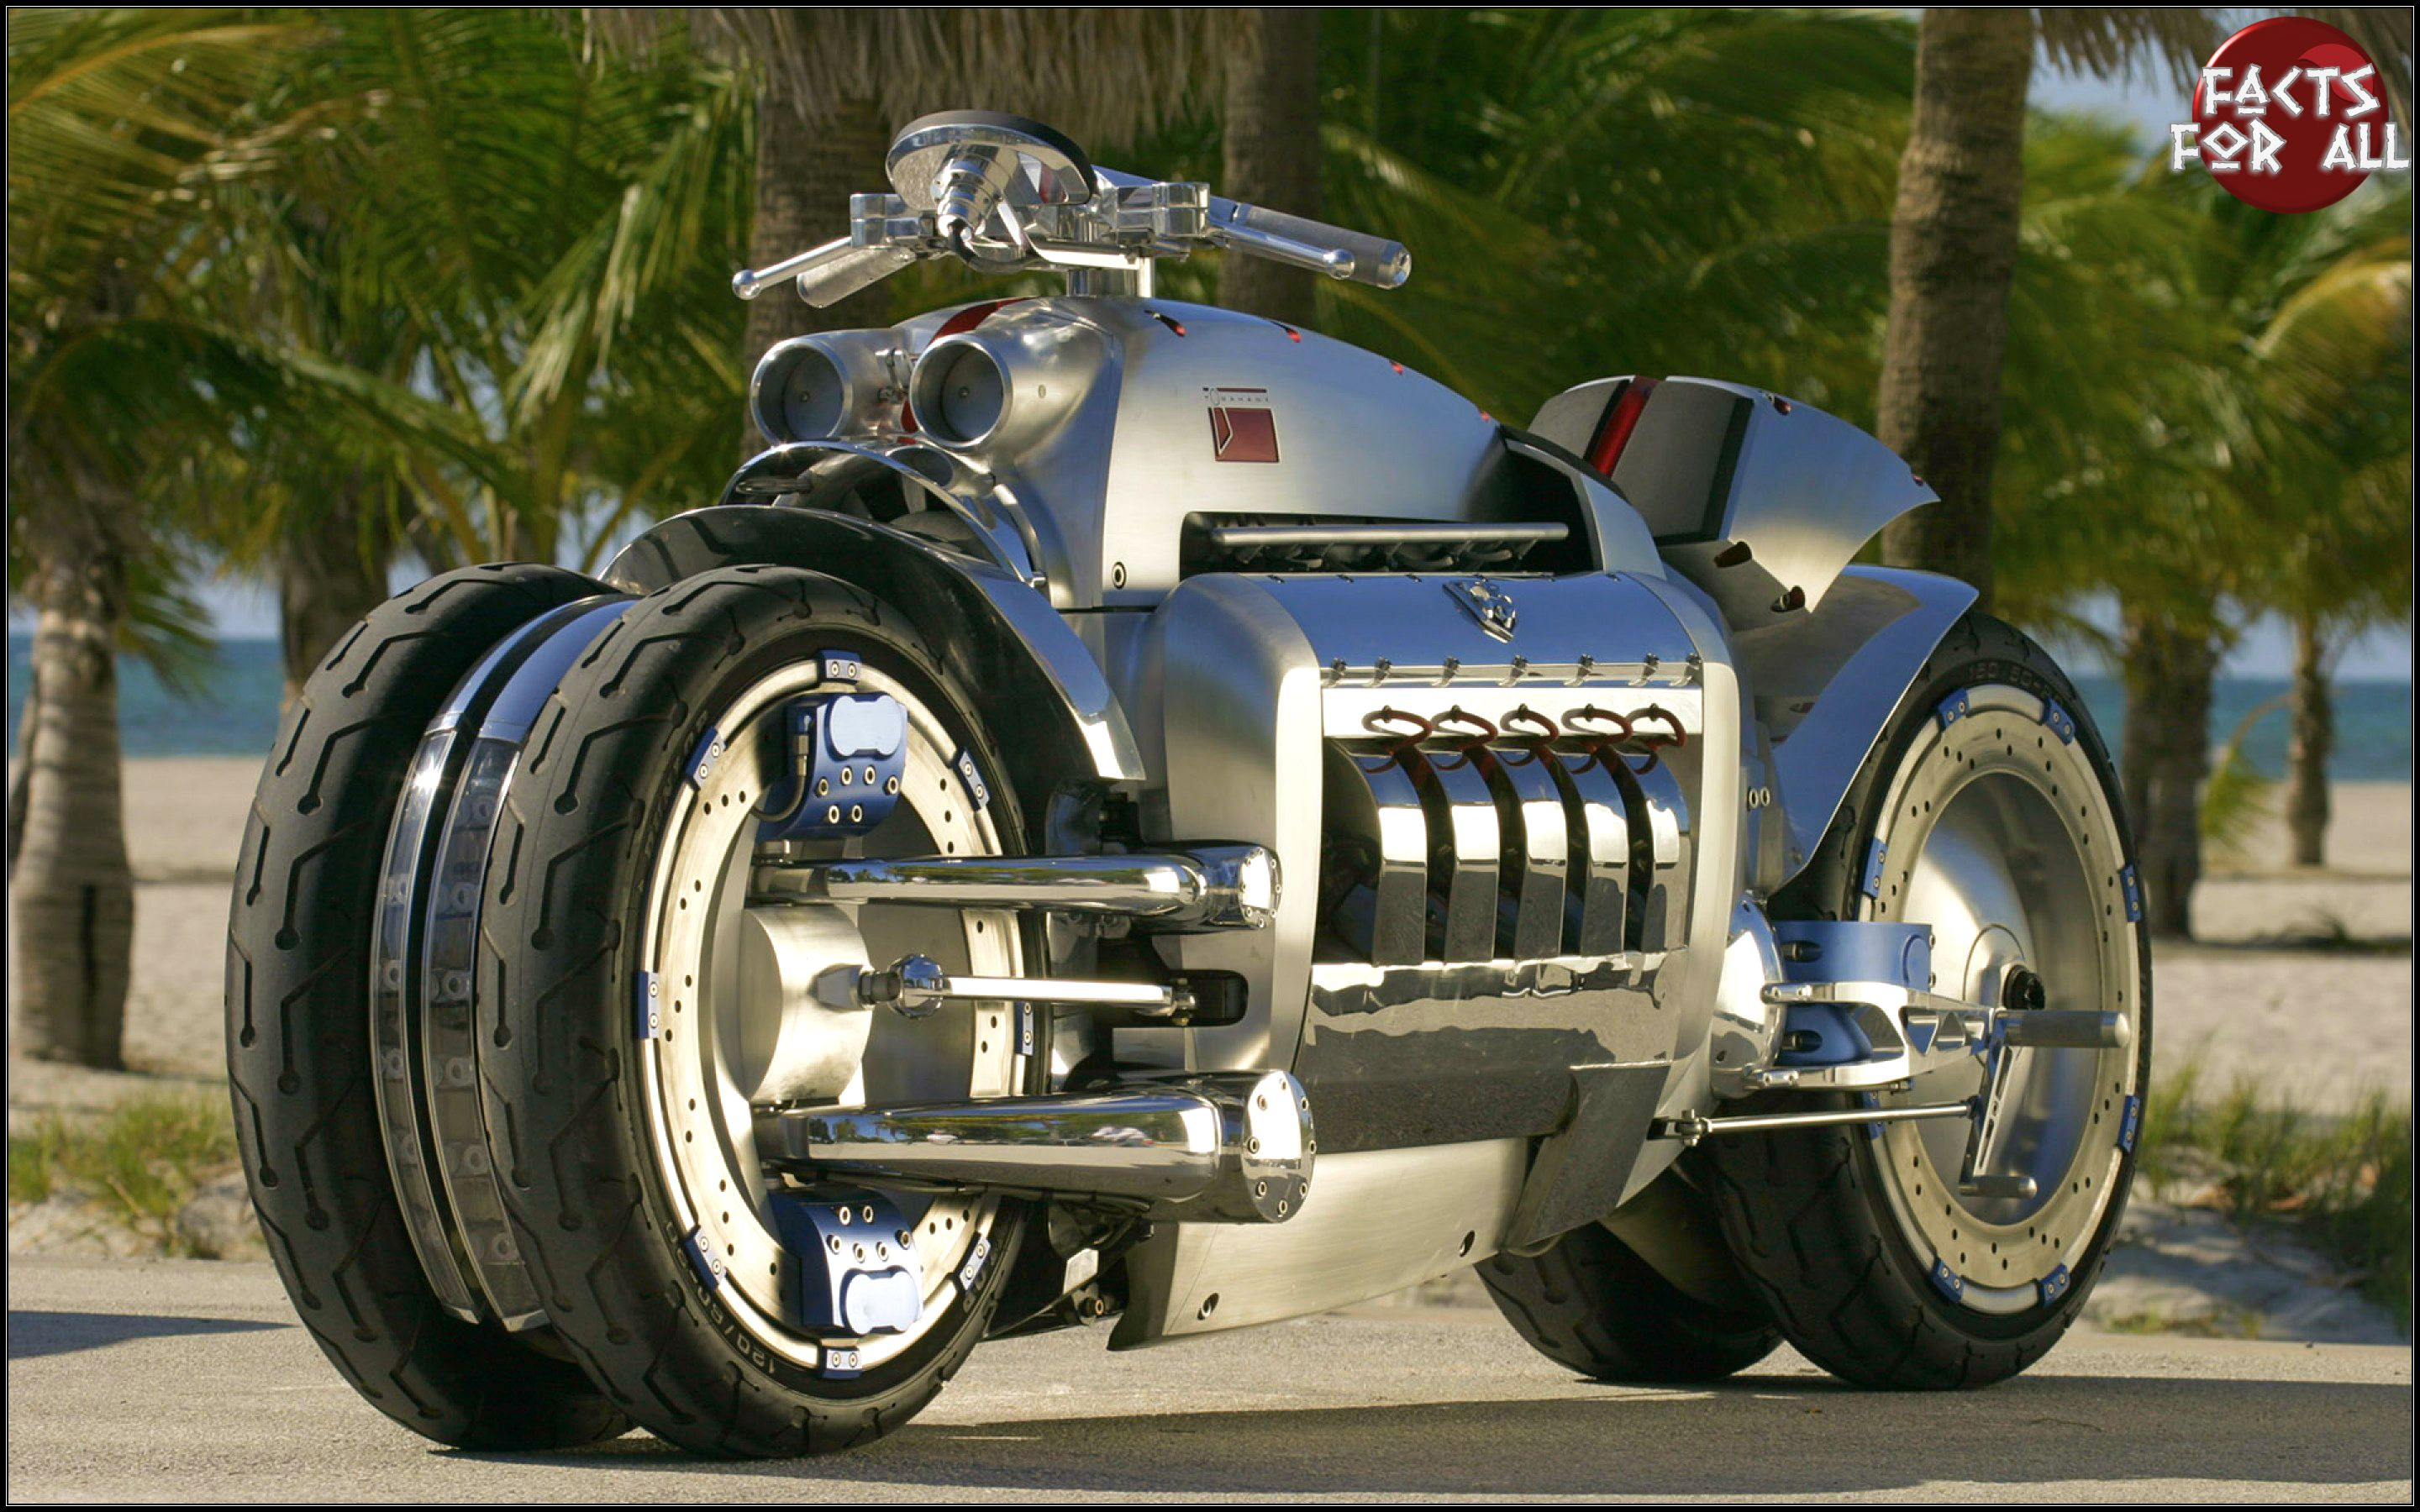 meet the fastest motorcycle in the world dodge tomahawk features rh pinterest com au